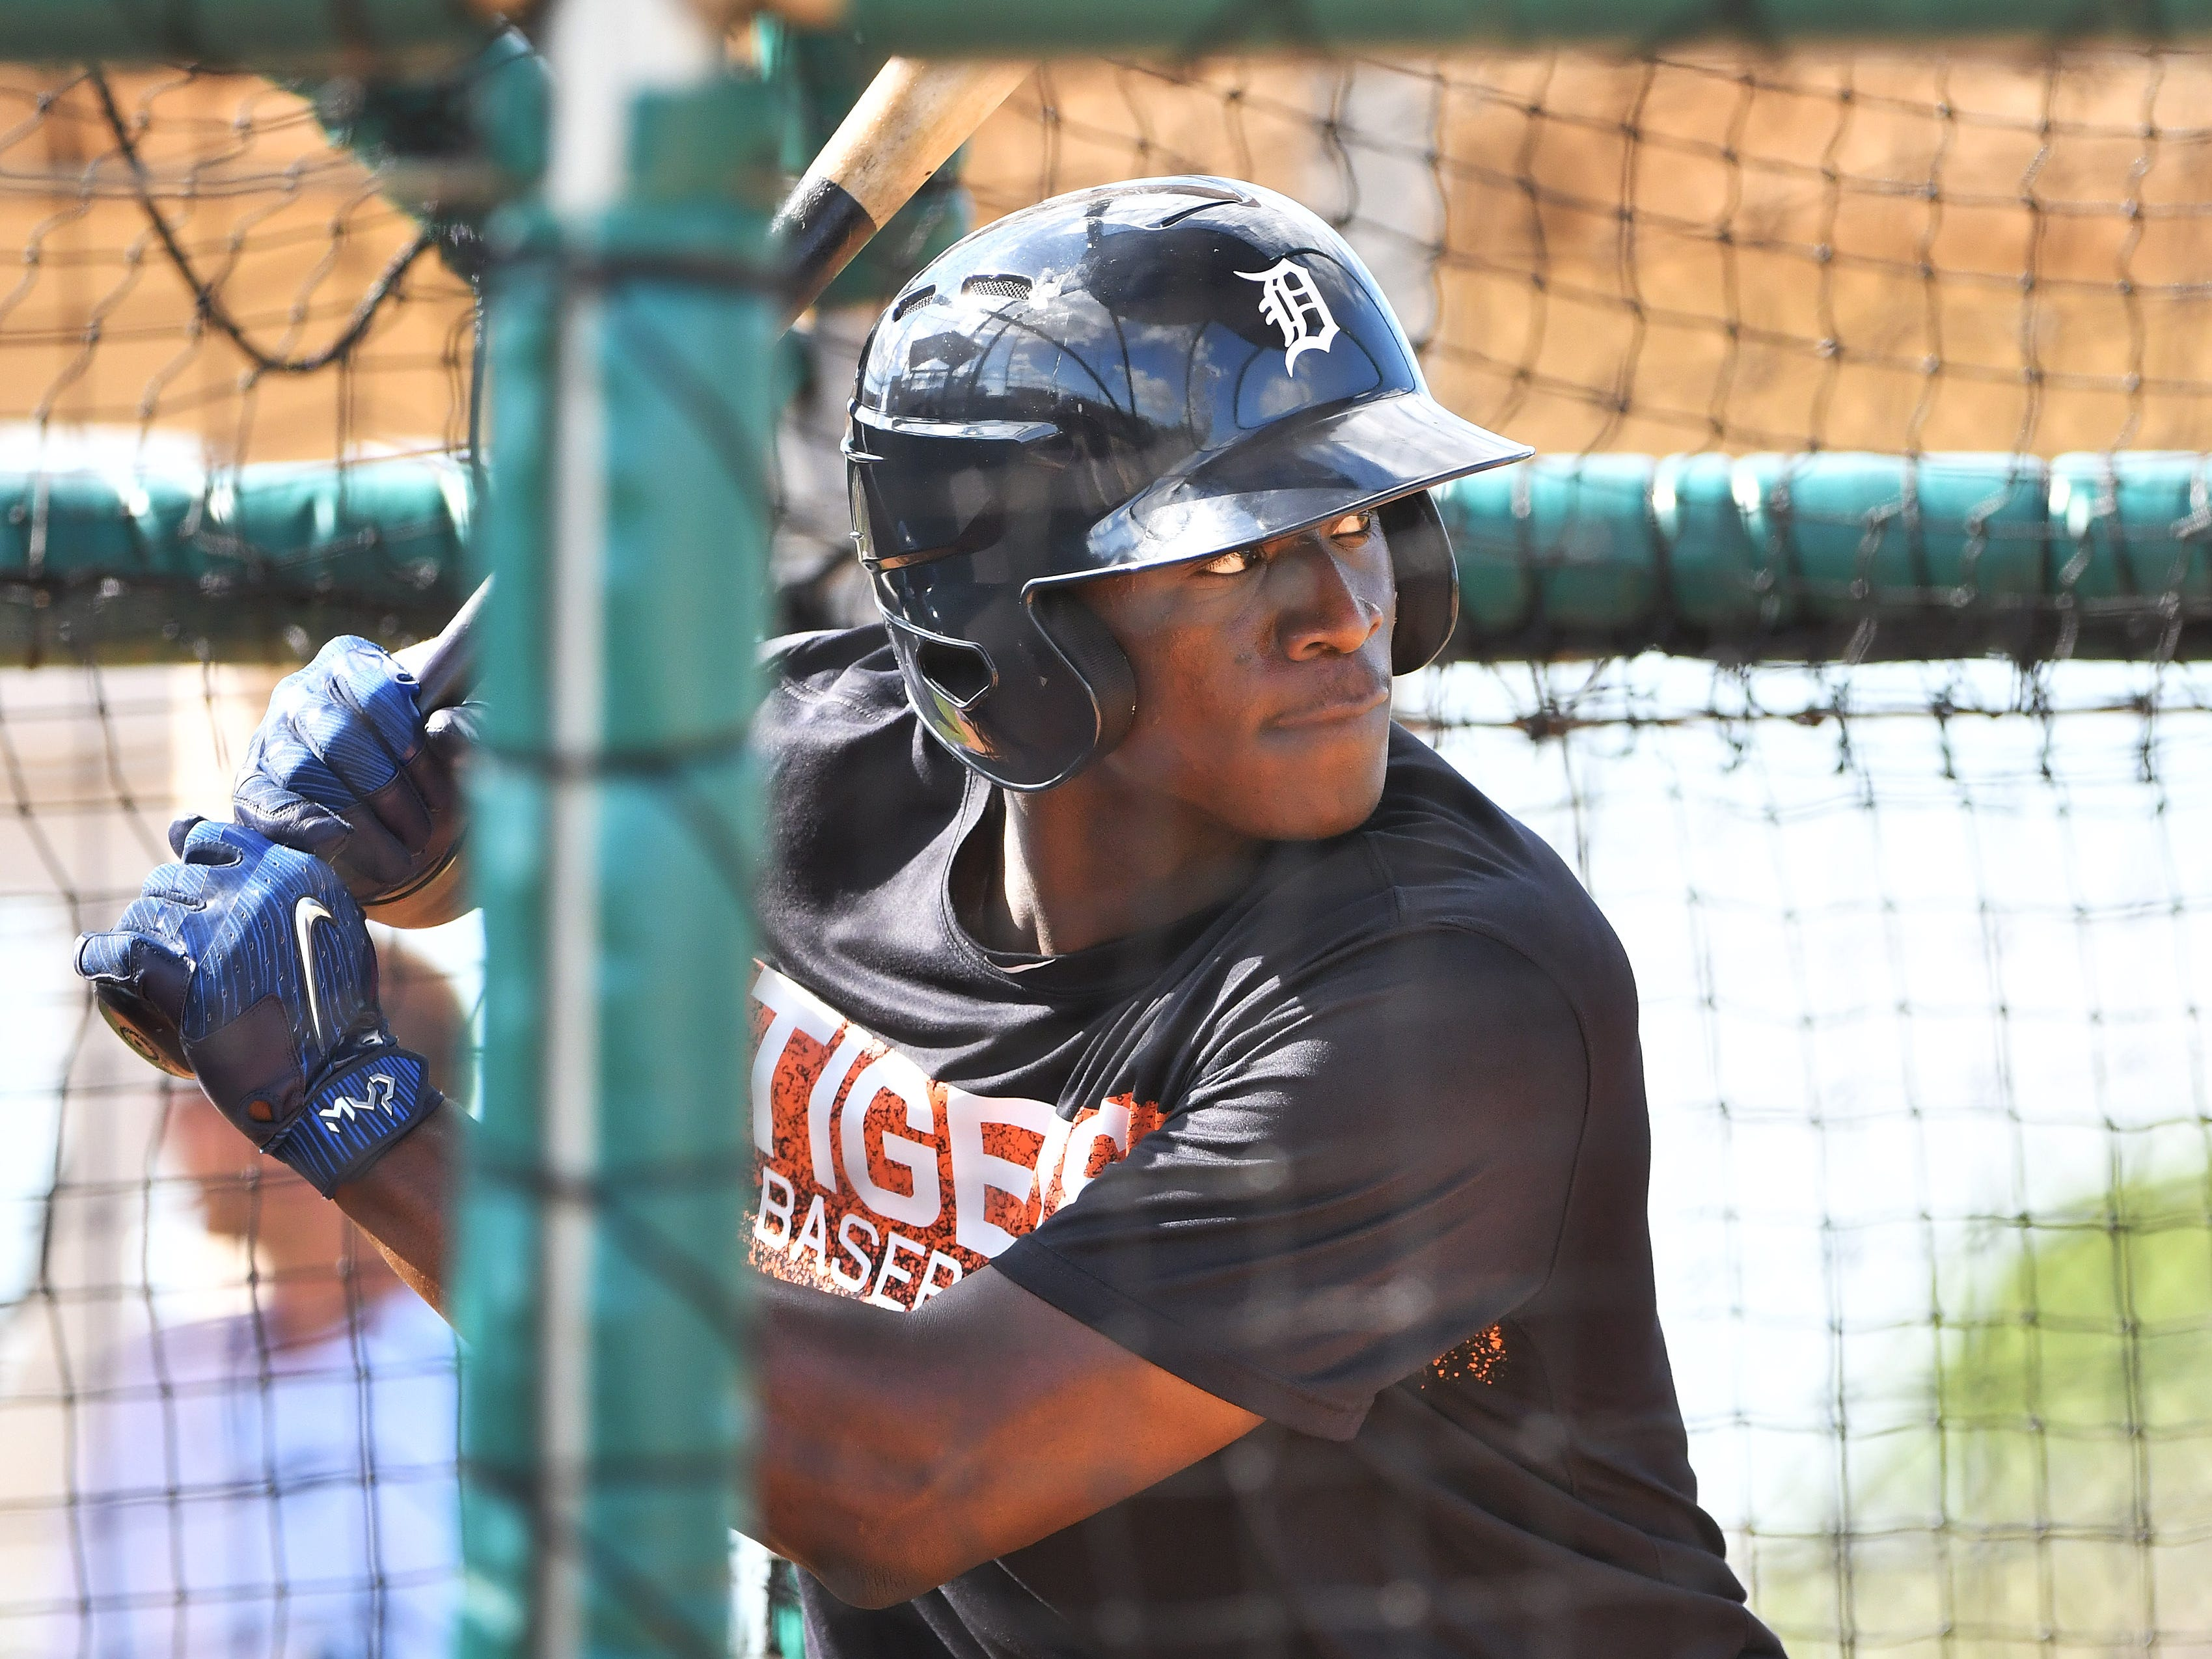 8. Daz Cameron, CF, 22, 6-2, 195: Focus for a moment on Cameron's work in last year's Arizona Fall League, a sturdy stage, indeed. Cameron in 20 games batted .342/.435/.468/.903. Not the fattest body of work, but given he played well at three levels last year, including Triple A, one can sense Cameron could quickly be planting spikes on Comerica Park's turf. There is a question about whether he will simply be an OK all-around player. Or one who can be upper-tier. Deeper insight is en route in 2019.